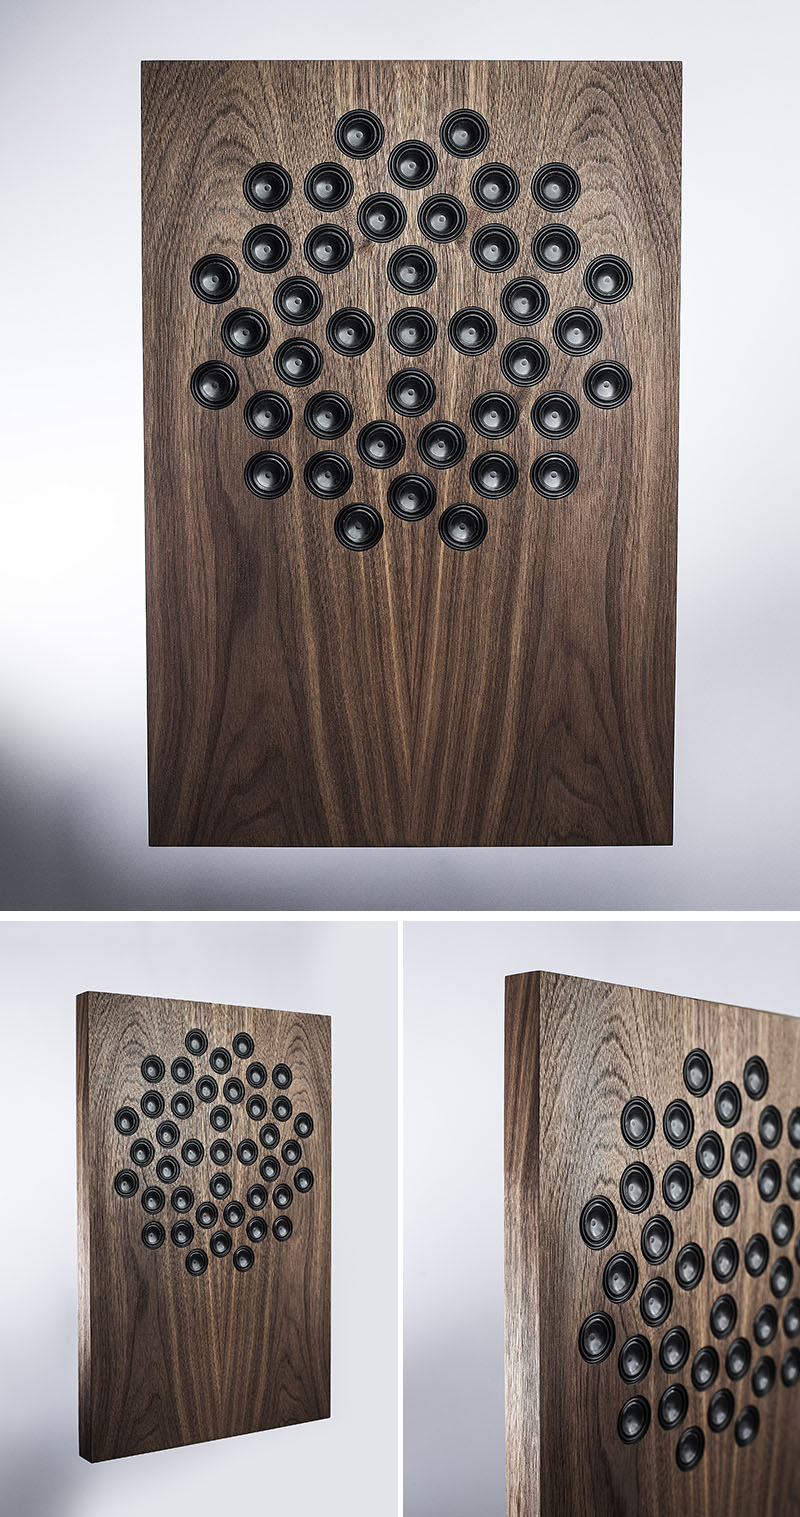 discreet-modern-wall-speakers-070617-1132-03